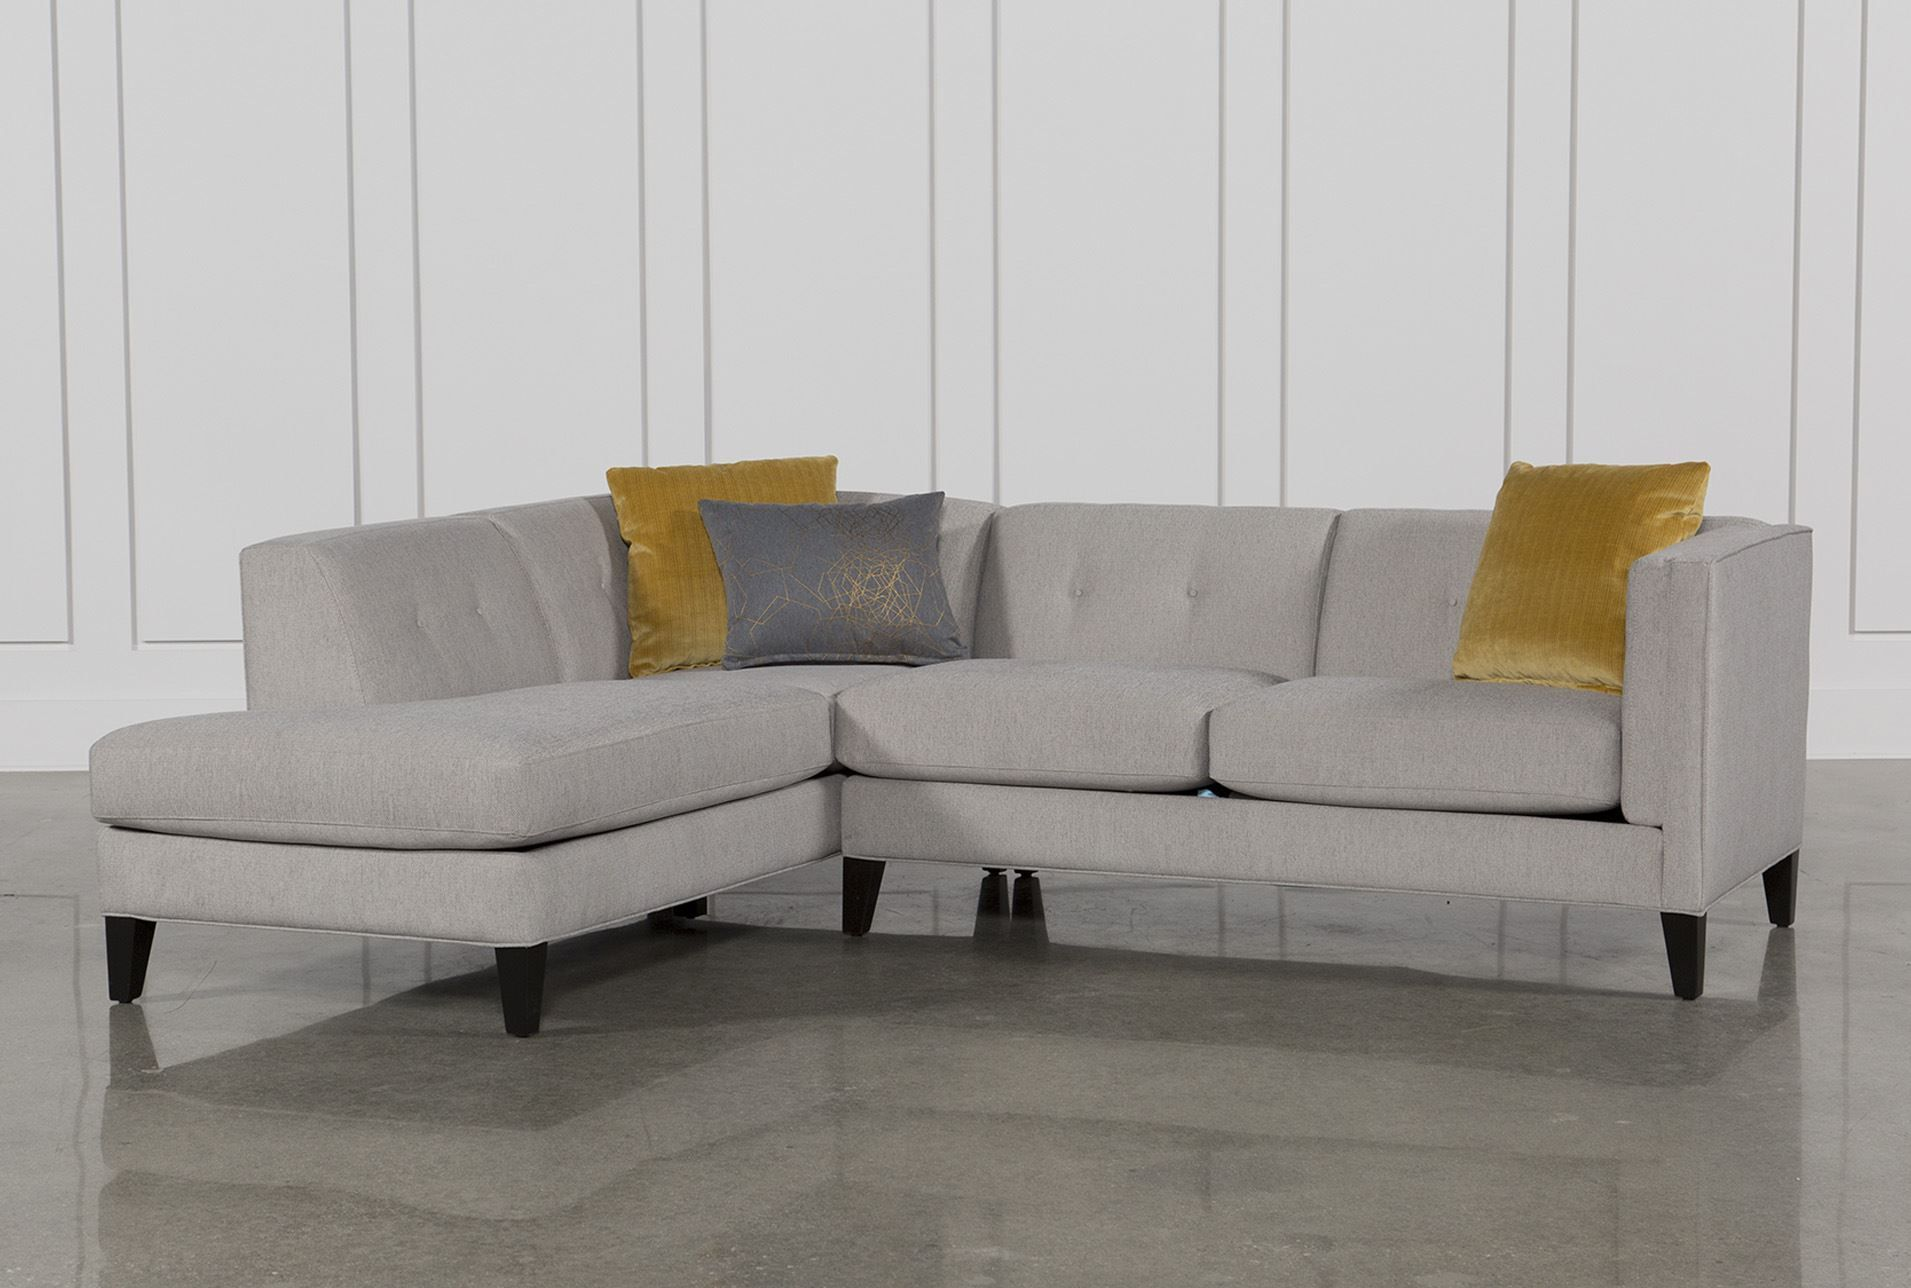 Avery 2 Piece Sectional Small Sectional Sofa Small Sectional Couch Sectional